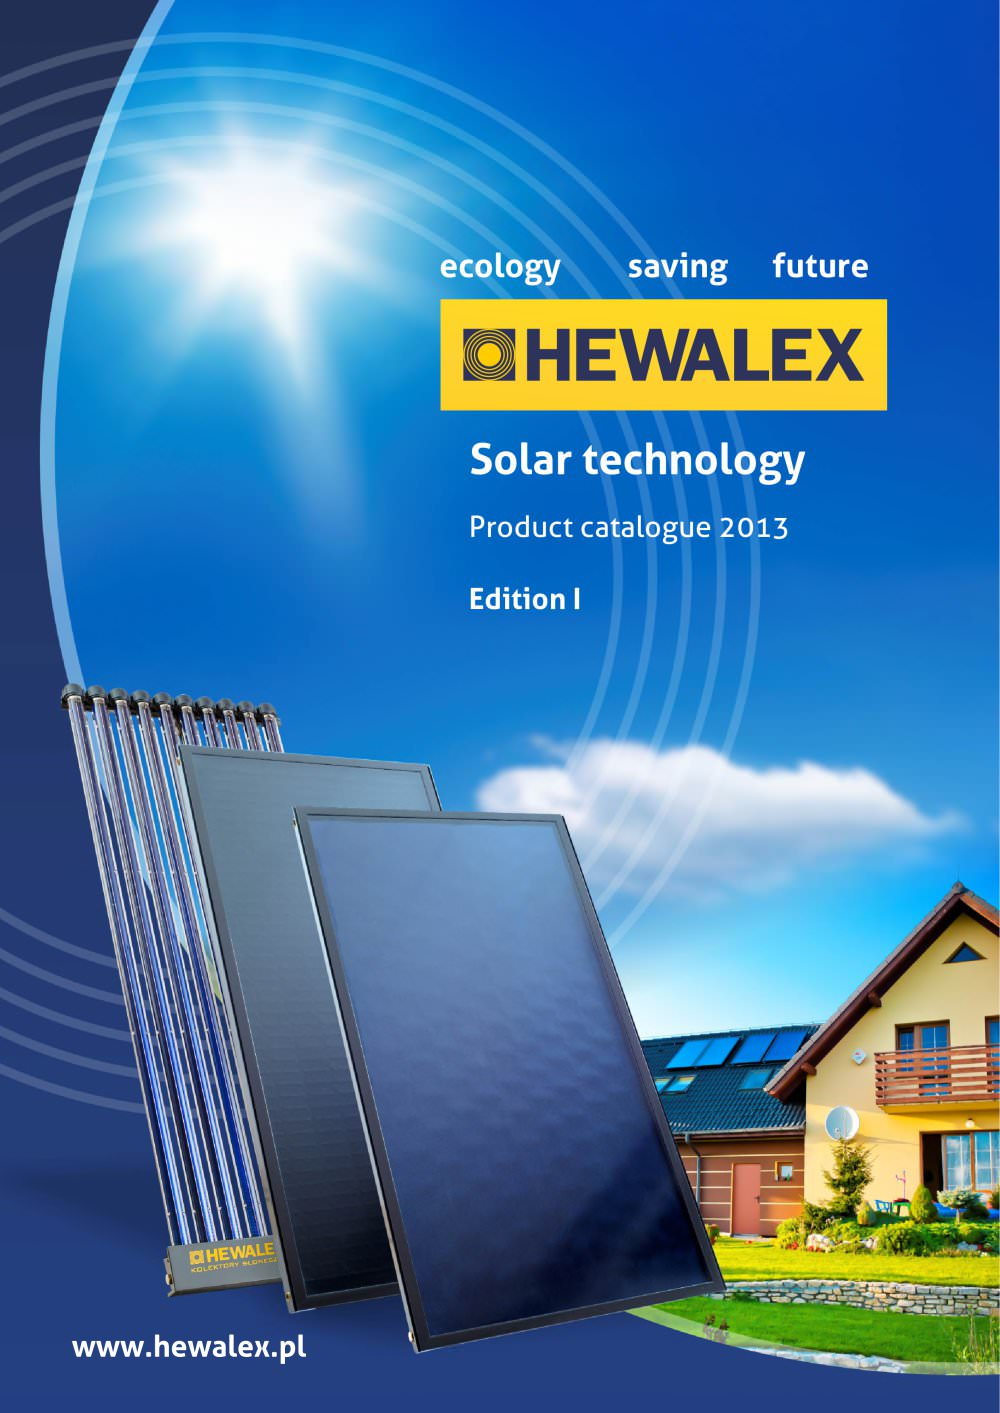 solar-technology-product-catalogue-2013-243495 1b